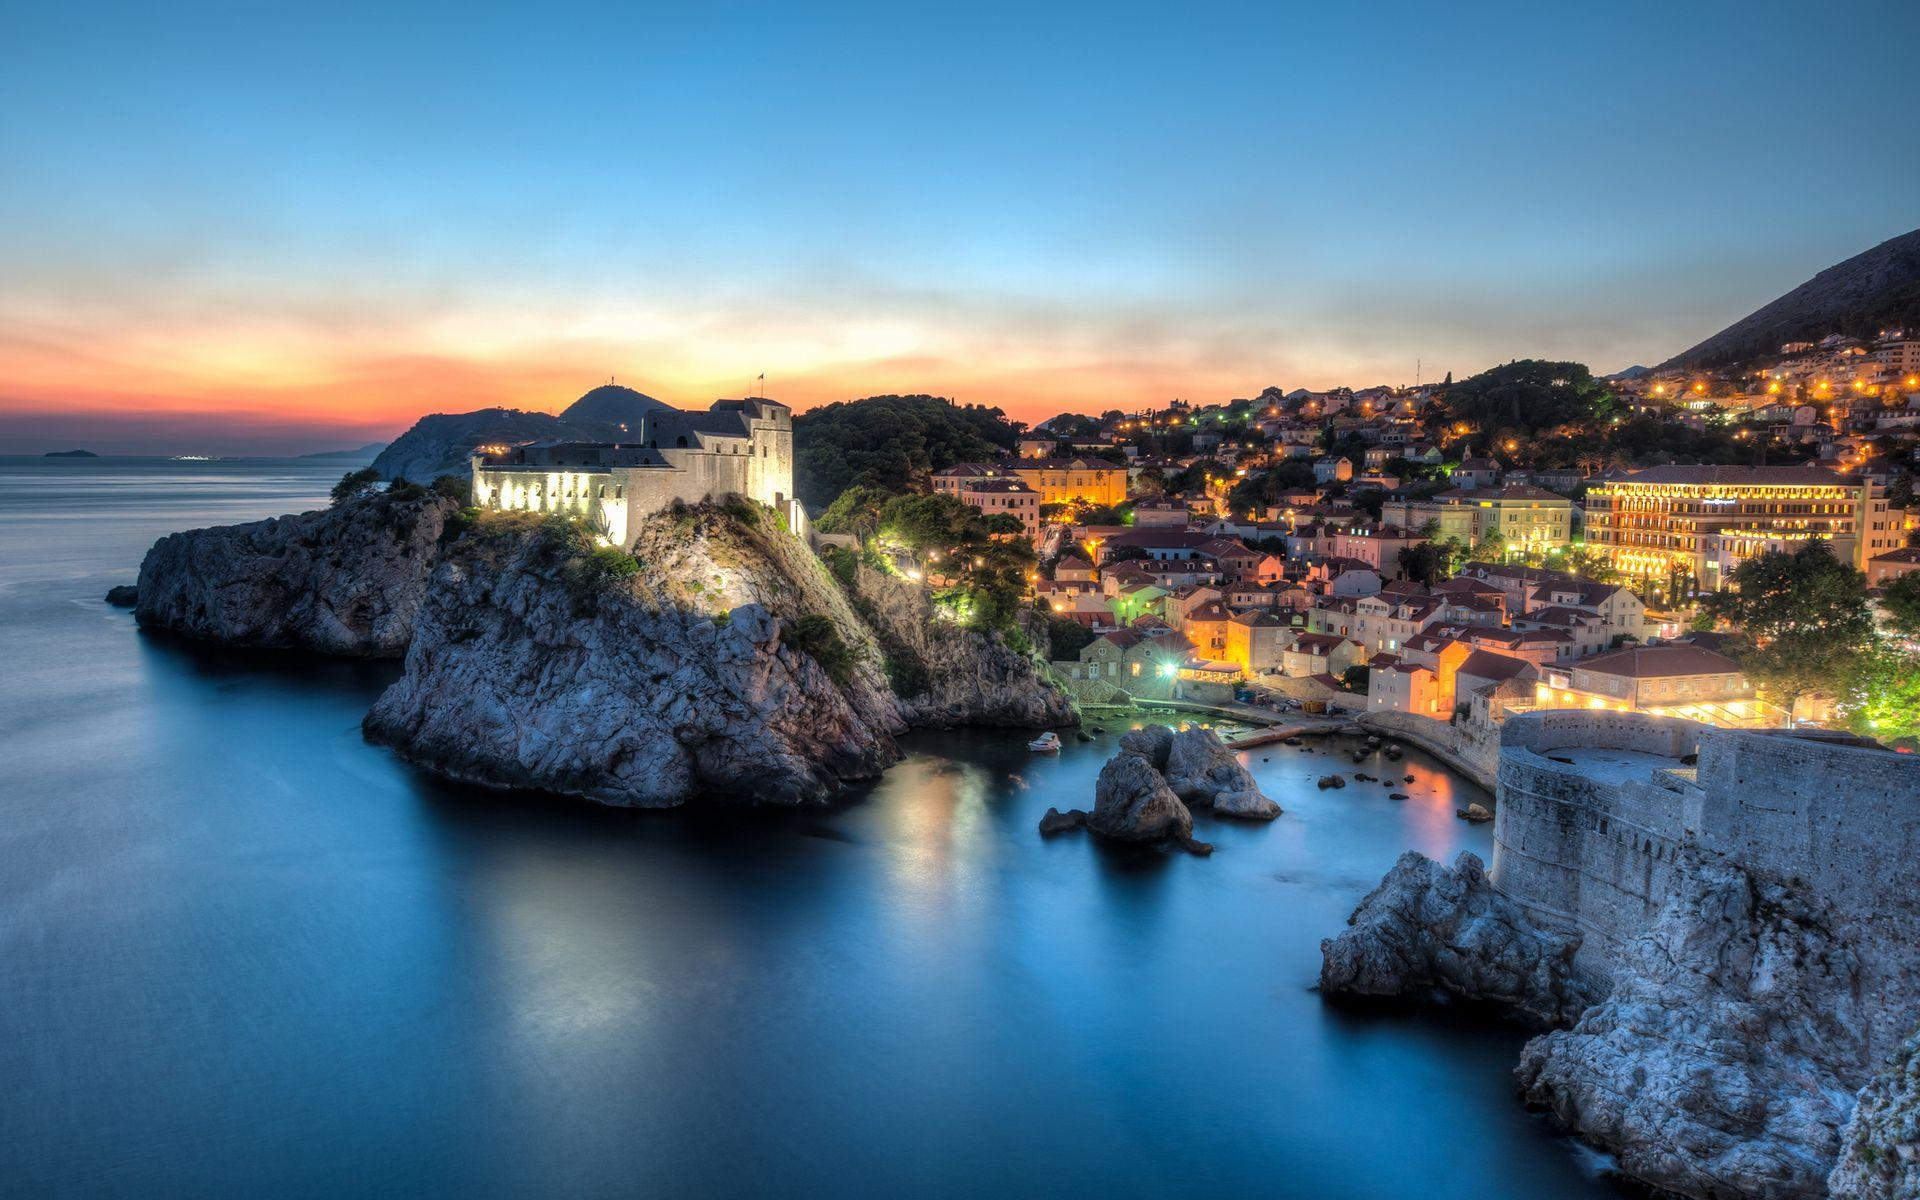 Dubrovnik HD Desktop Wallpaper, Instagram photo, Backgrounds Image